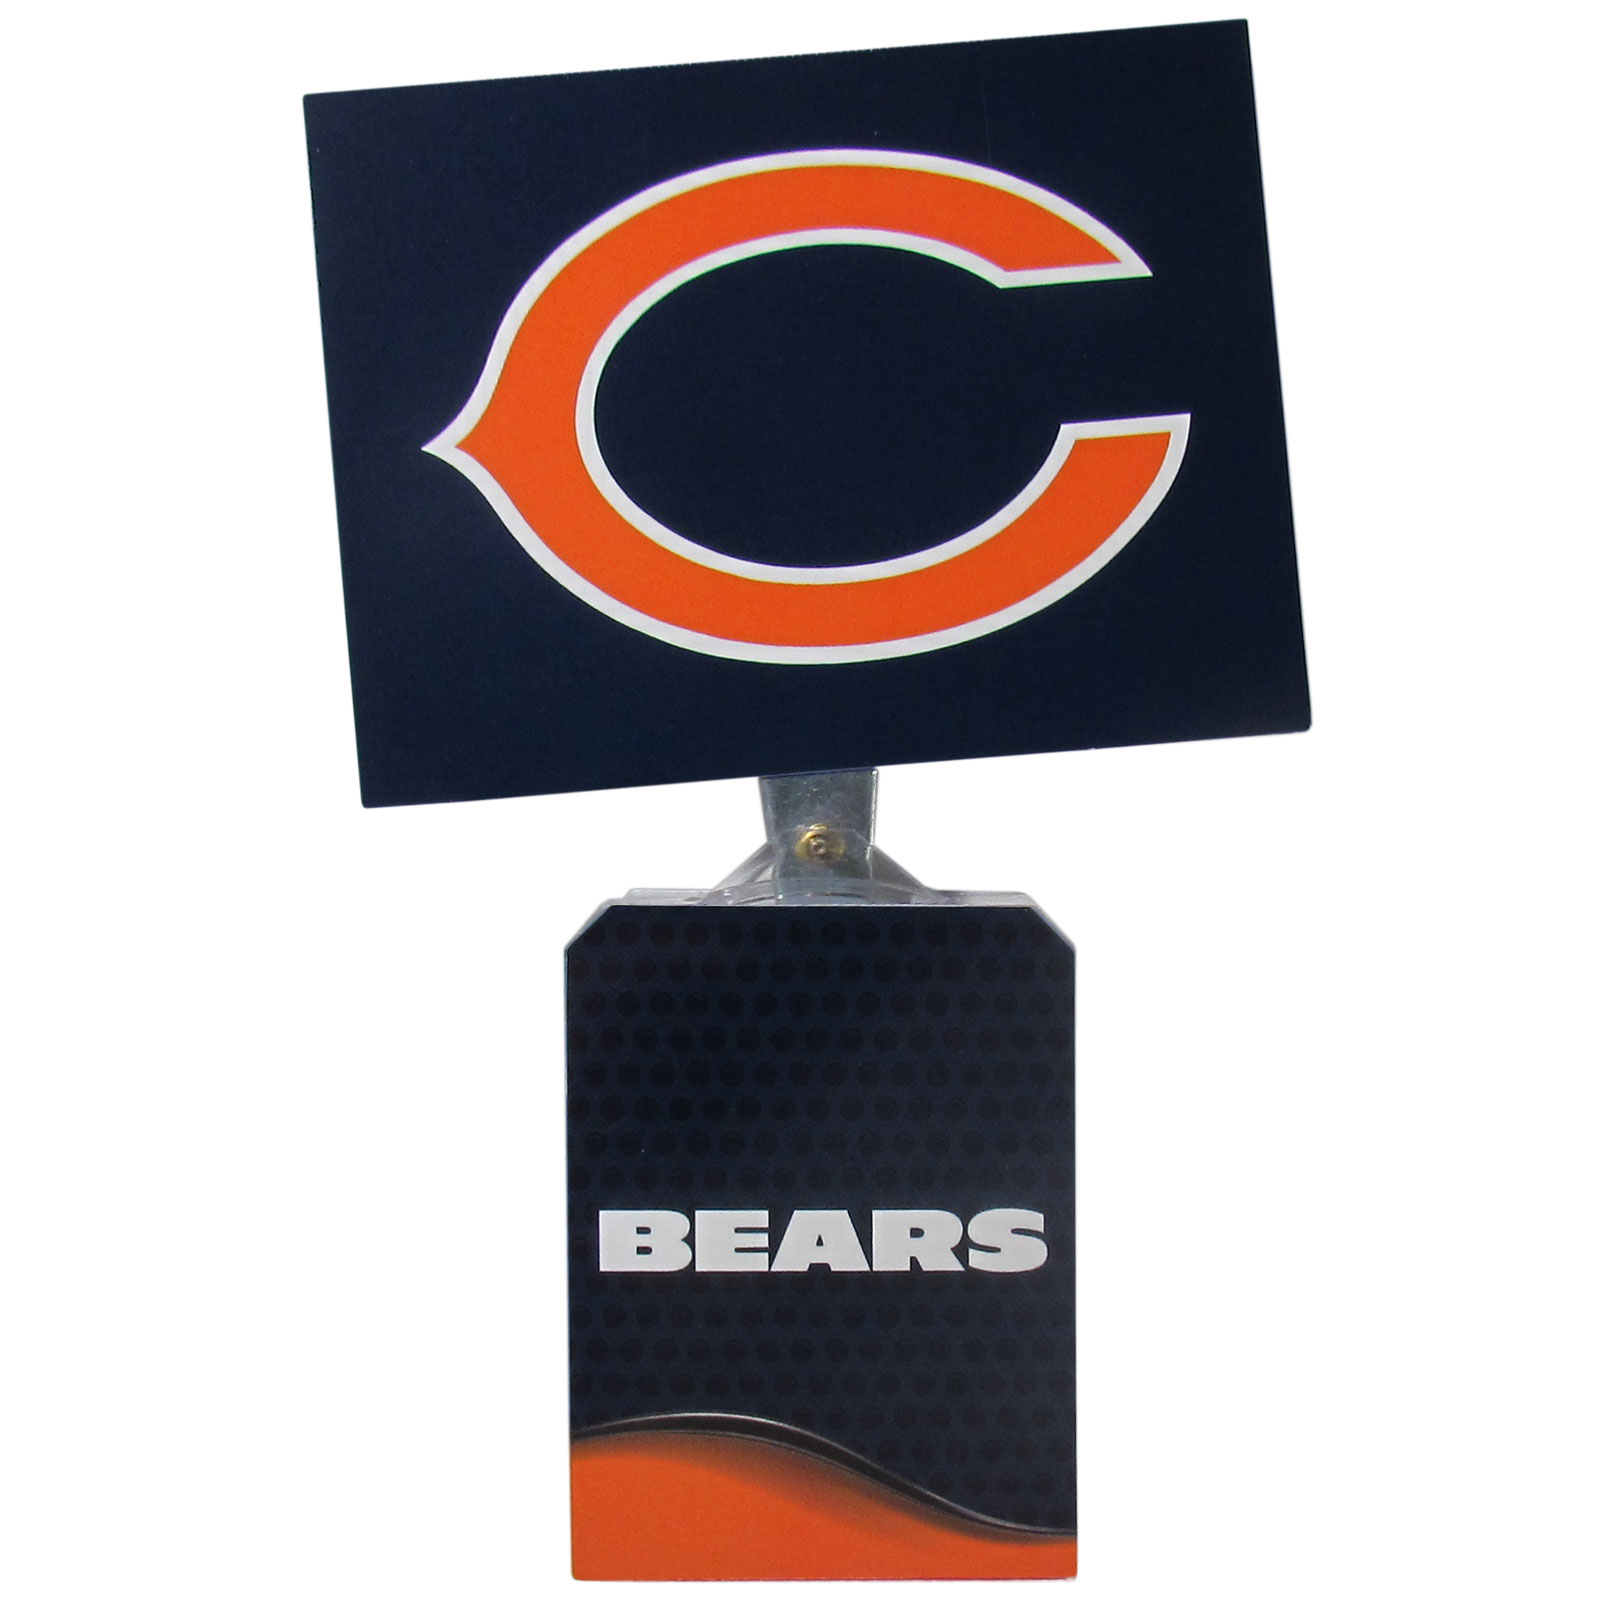 Chicago Bears Solar Flags - Get pumped up on the way to game with Siskiyou's Chicago Bears Chicago Bears Solar Flag that mounts to your dashboard or window. The in-motion solar flag also doubles as decoration for your tailgate or homegate! The base of the flag is 3 inches tall and the flag is 4 inches making the entire in-motion solar flag stand at 7 inches tall. Keep your spirit moving with your favorite team's Solar Flag.